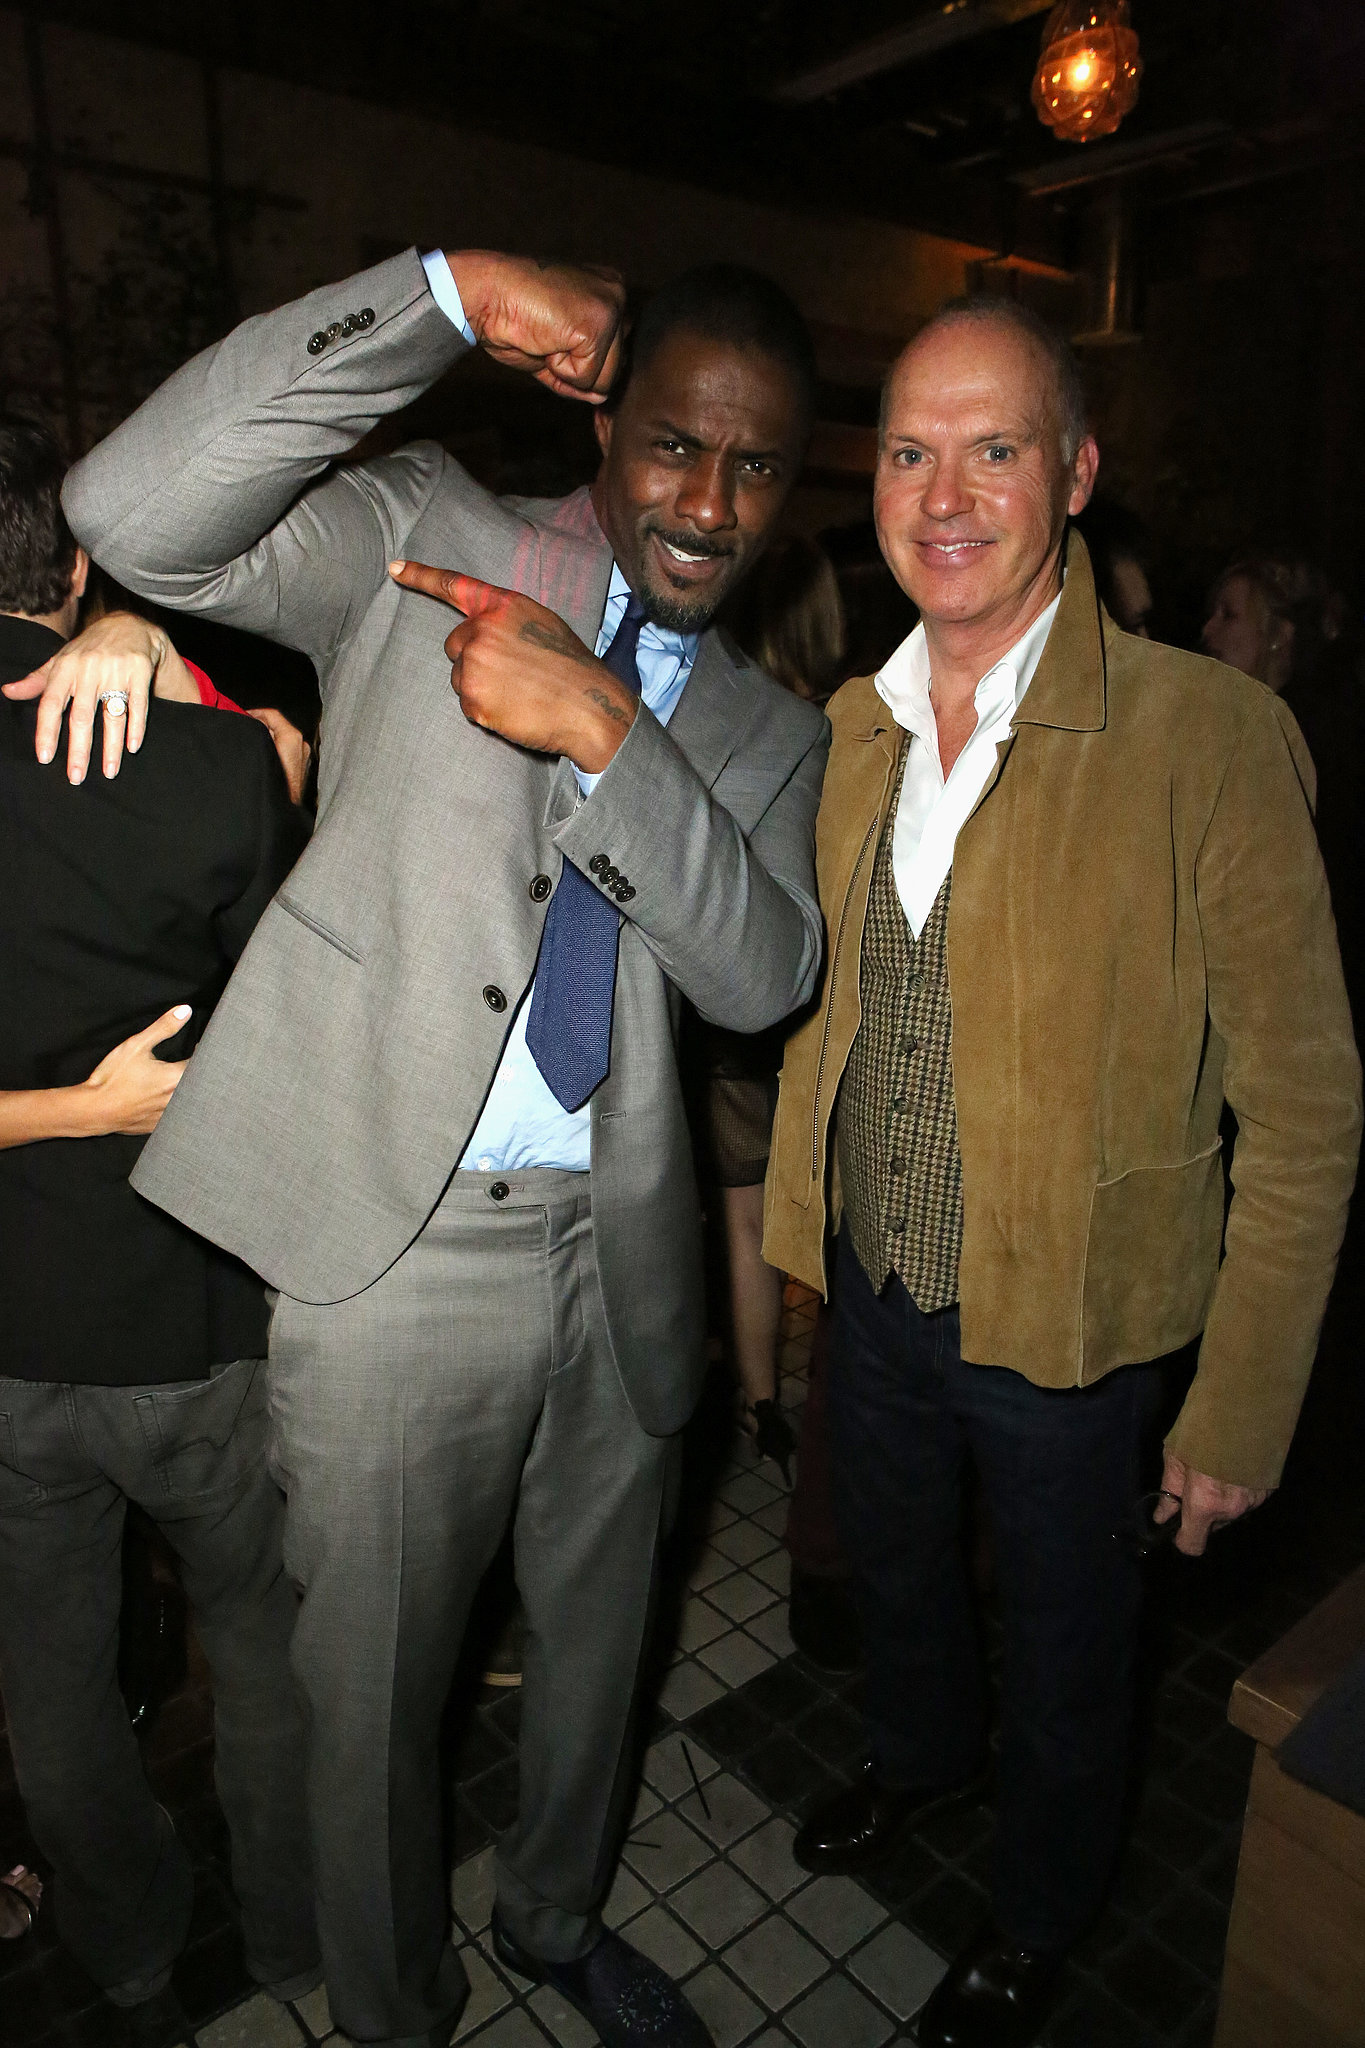 Idris Elba showed off his muscles with Michael Keaton.